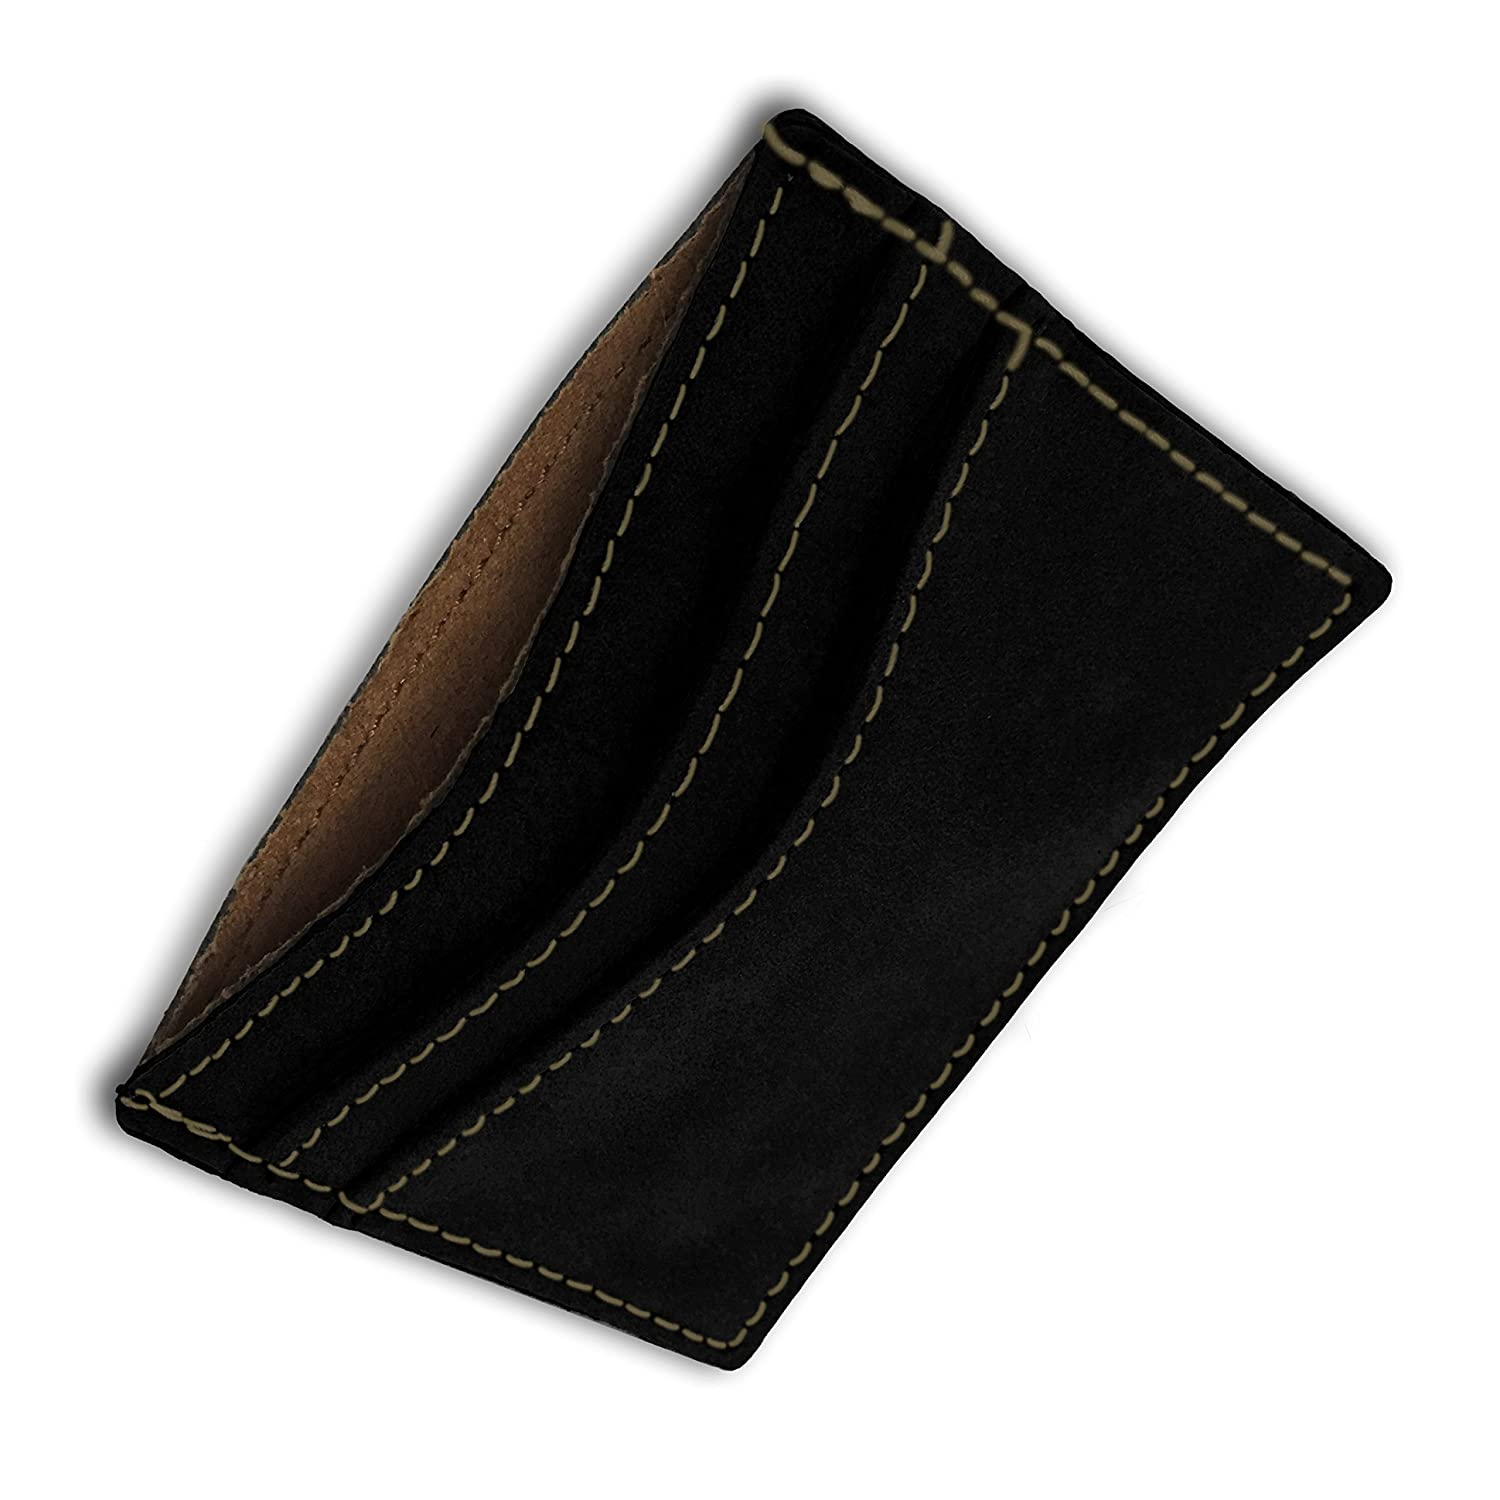 Hecho en Mexico Personalized Engraving Included Money Clip Wallet